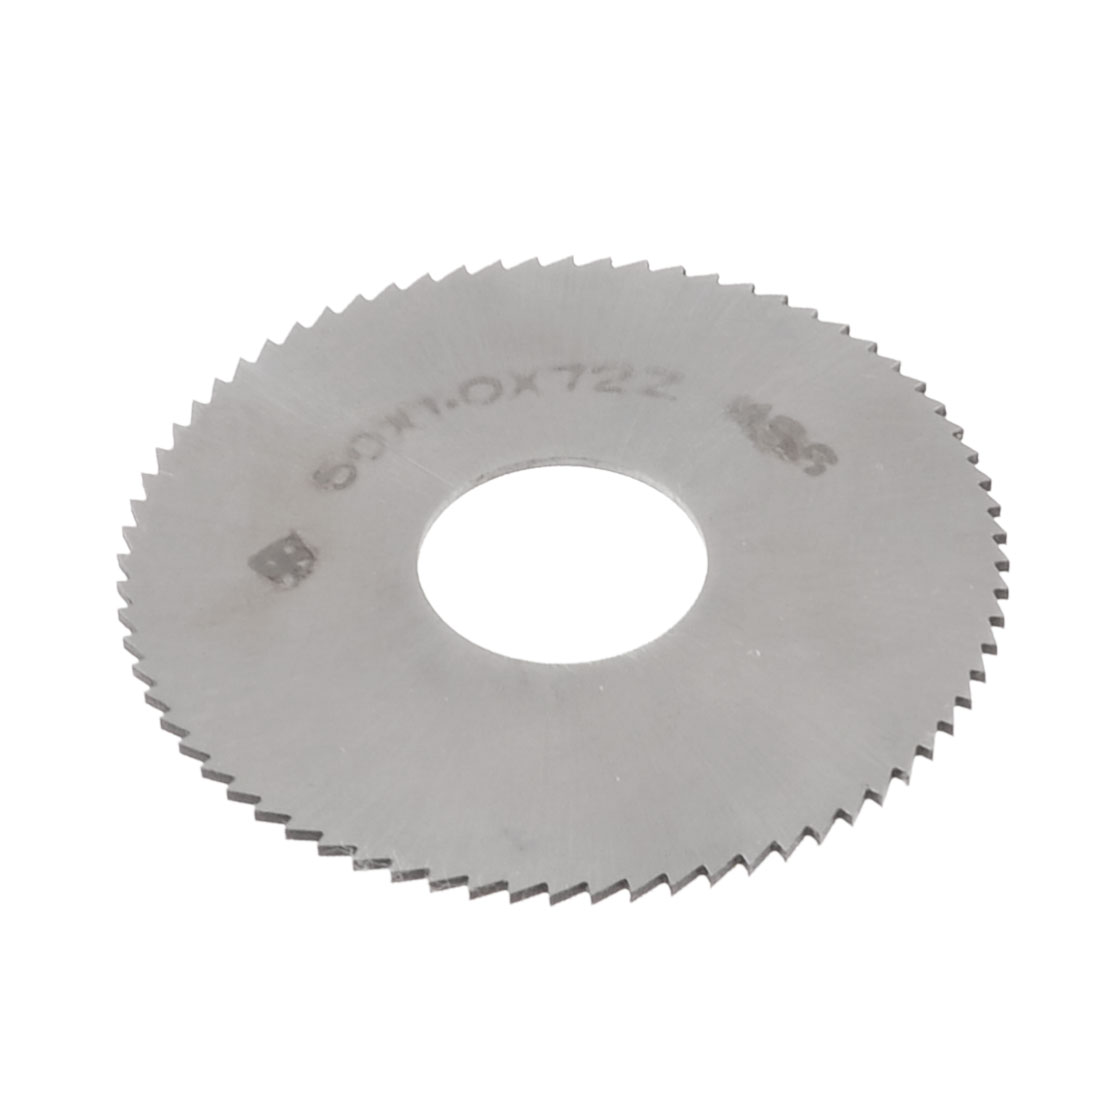 HSS 50mm Dia 1mm Thickness 72 Teeth Circular Milling Cutter Saw Silver Tone